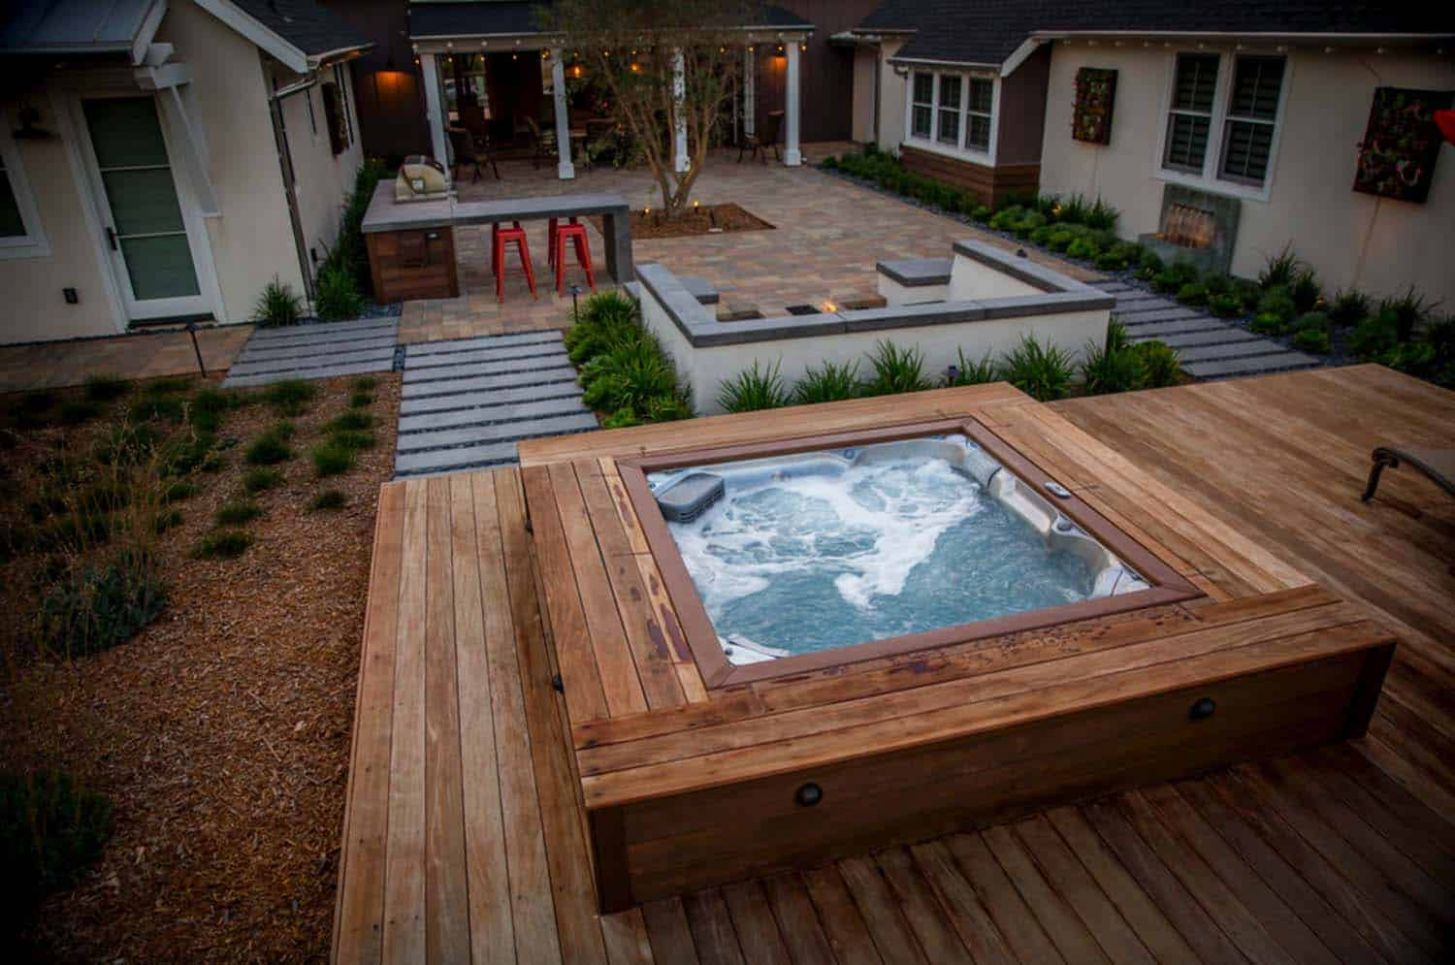 10+ Outstanding Hot Tub Ideas To Create A Backyard Oasis